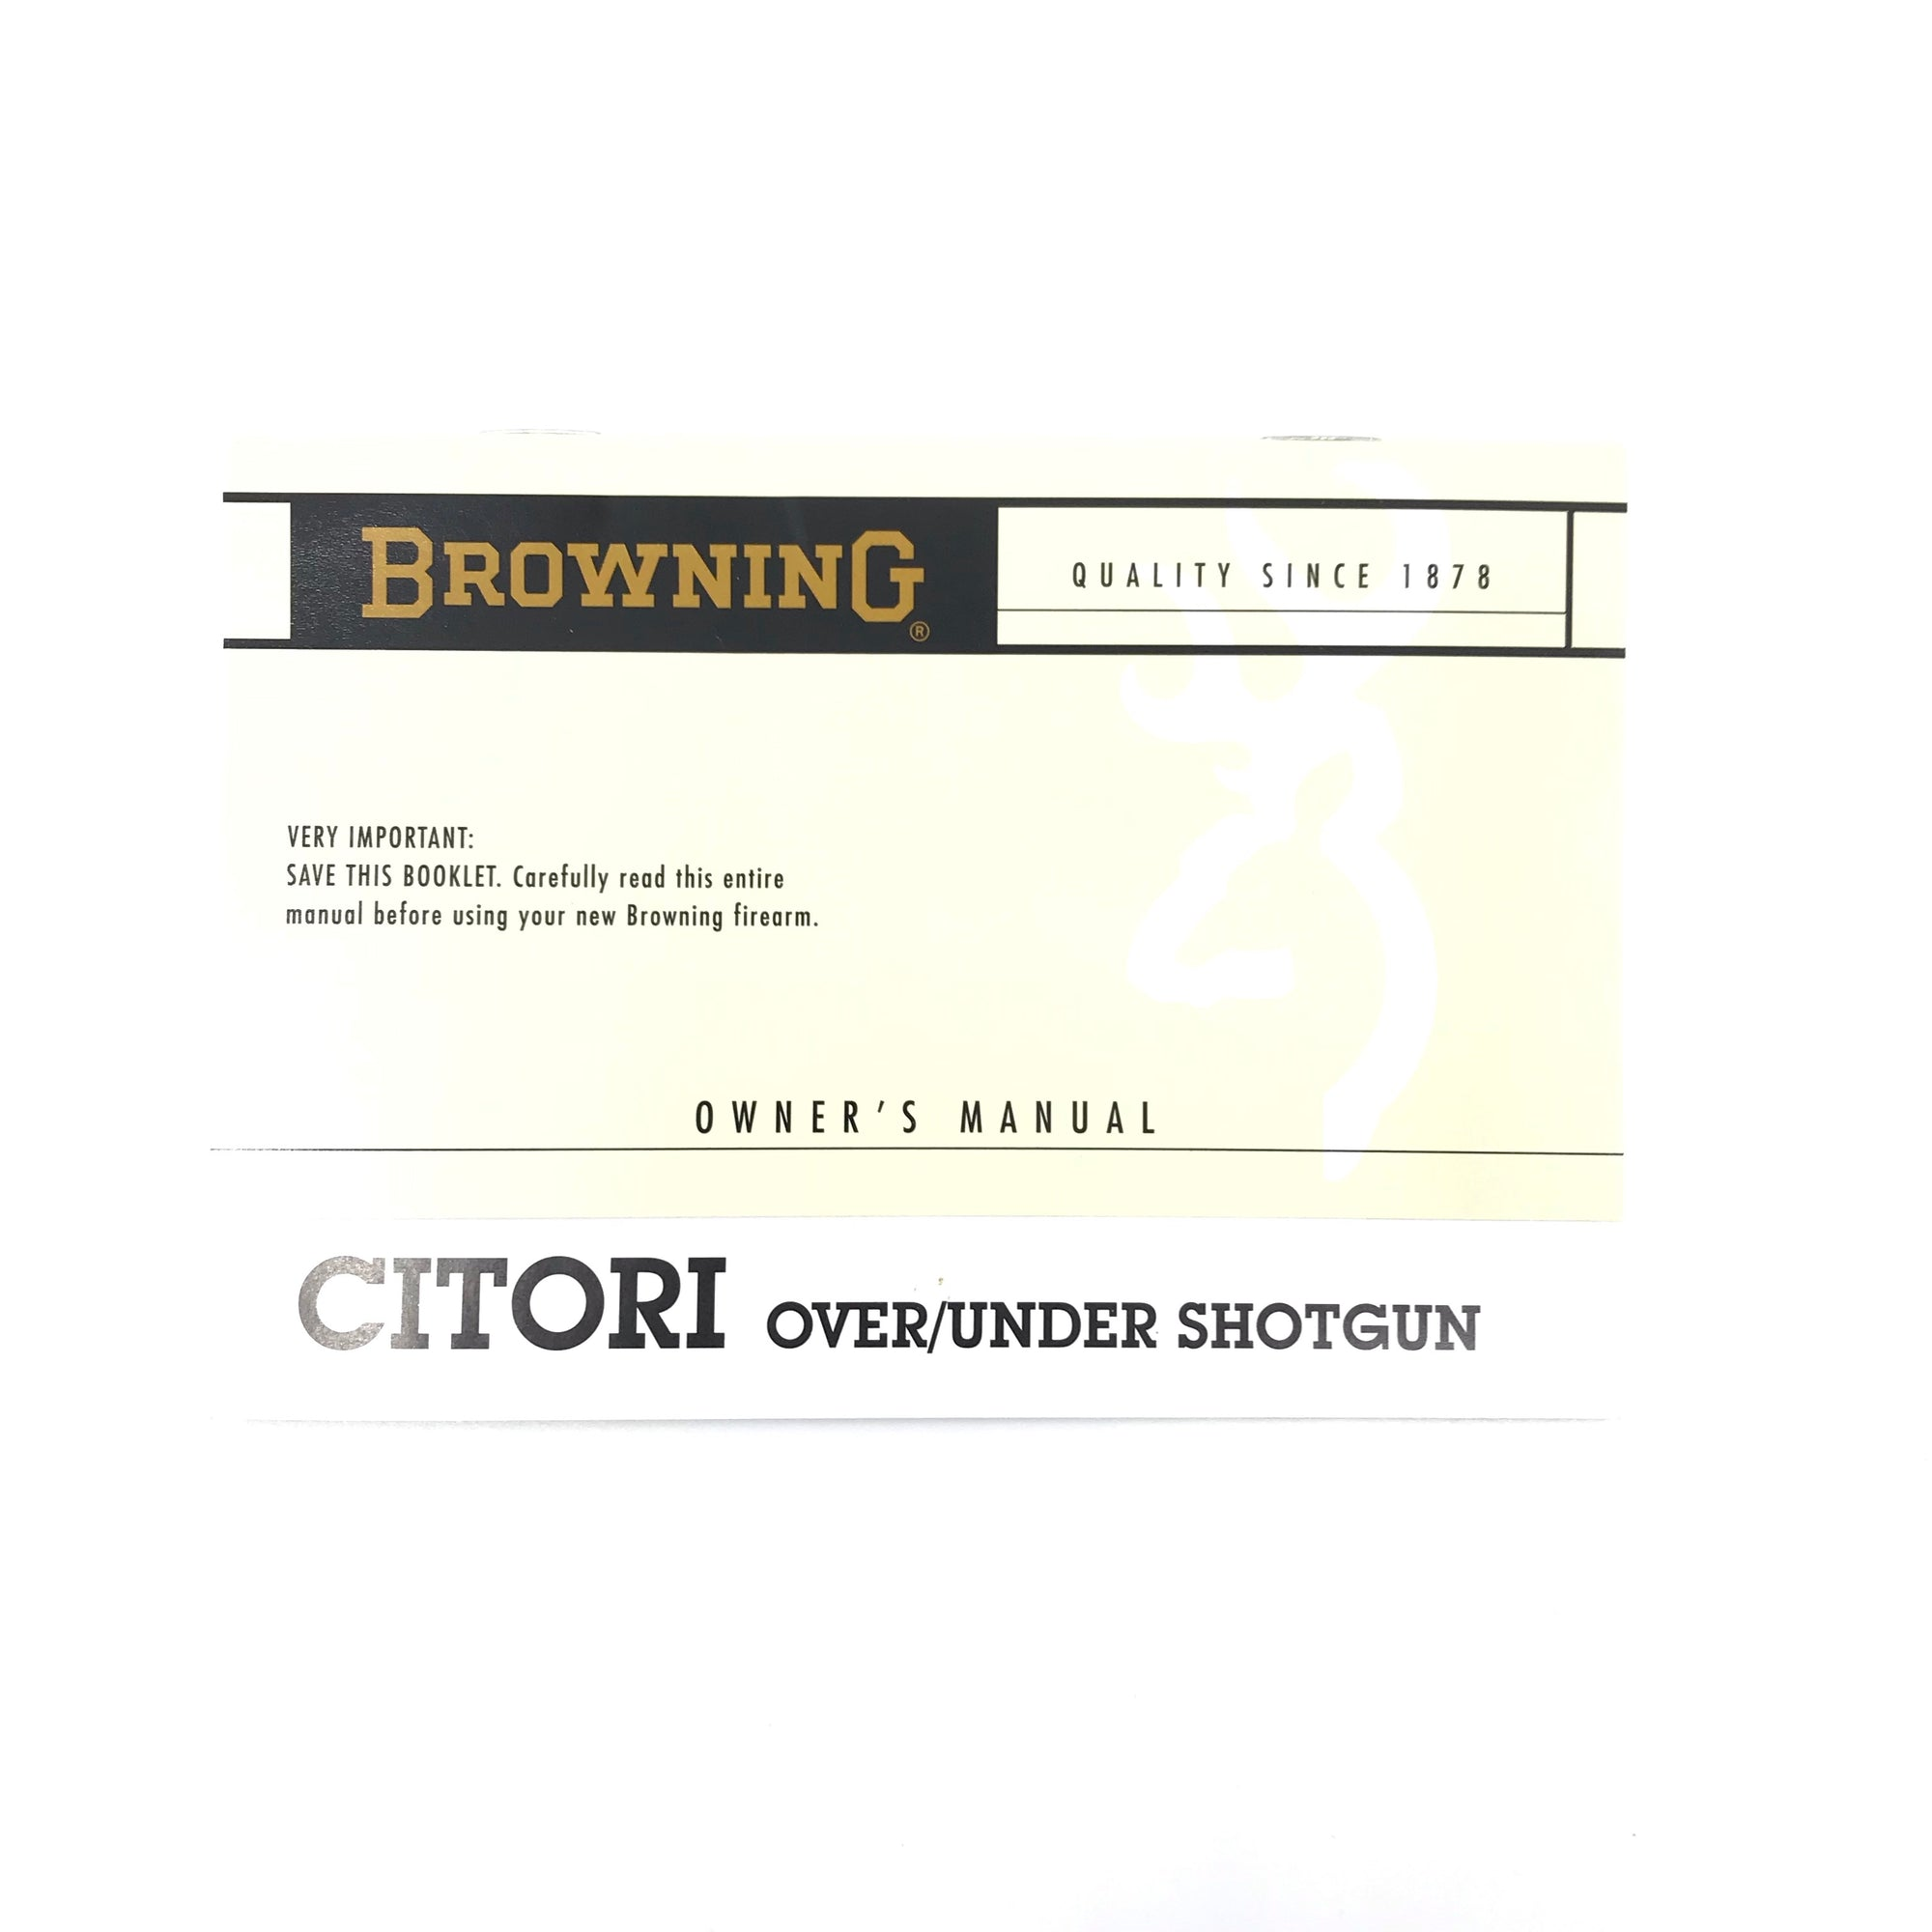 Browning Citori O&U Shotgun Owner's Manual